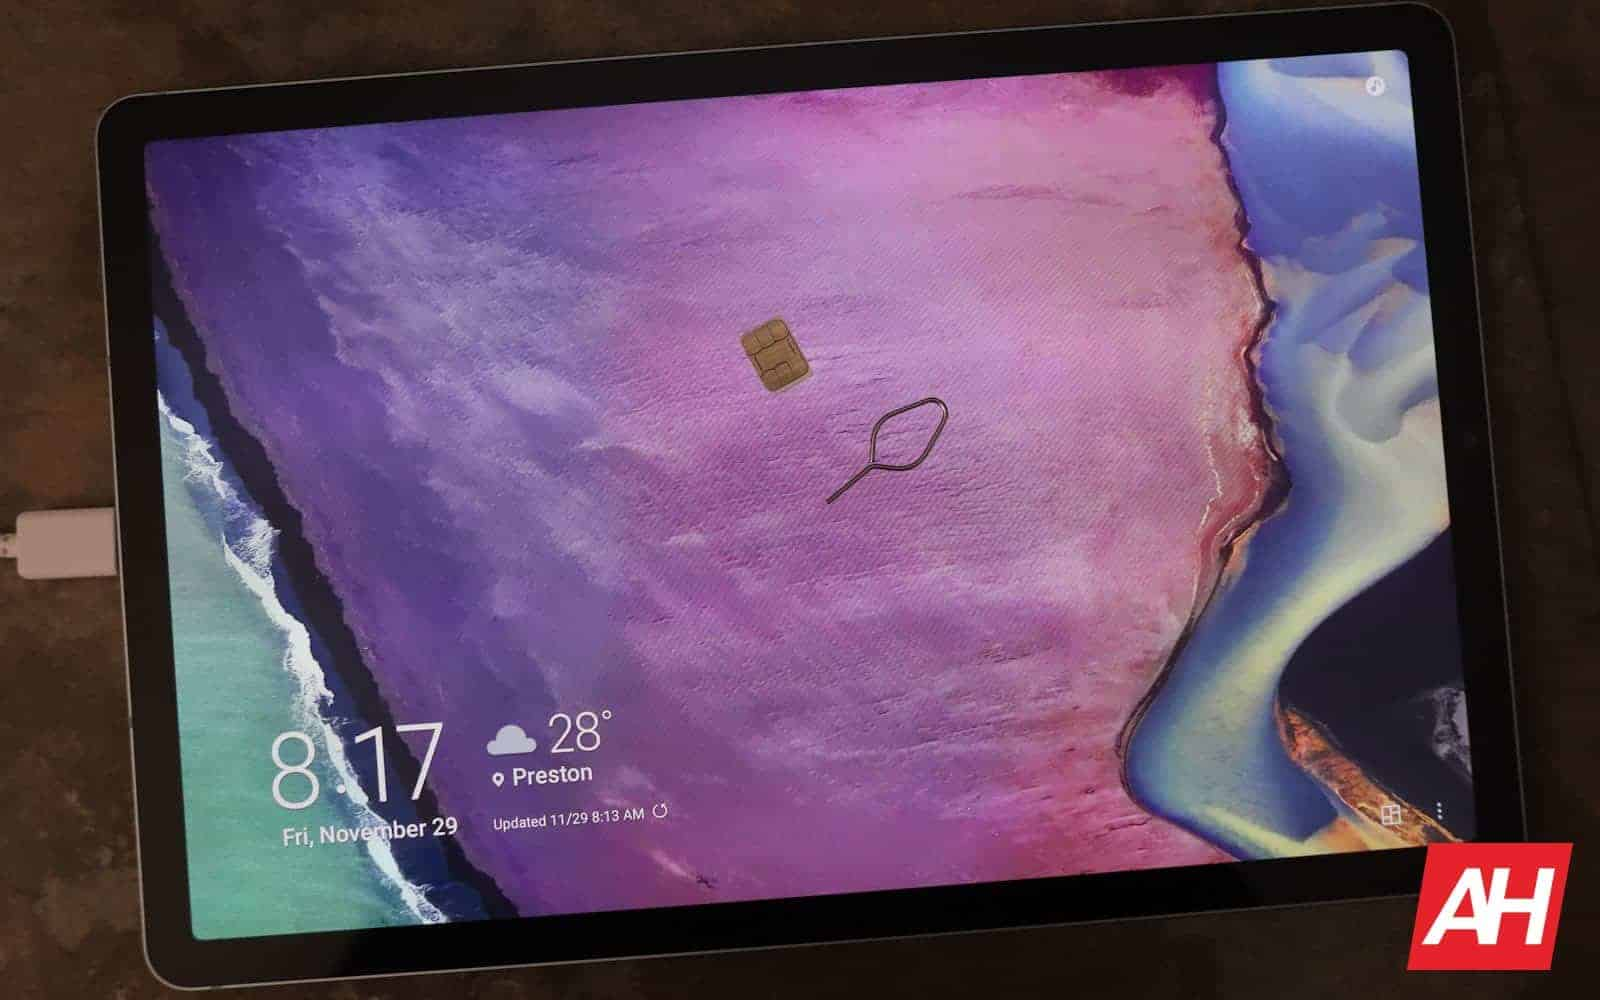 Samsung Galaxy Tab S6 Review 08 Connectivity AH 2019